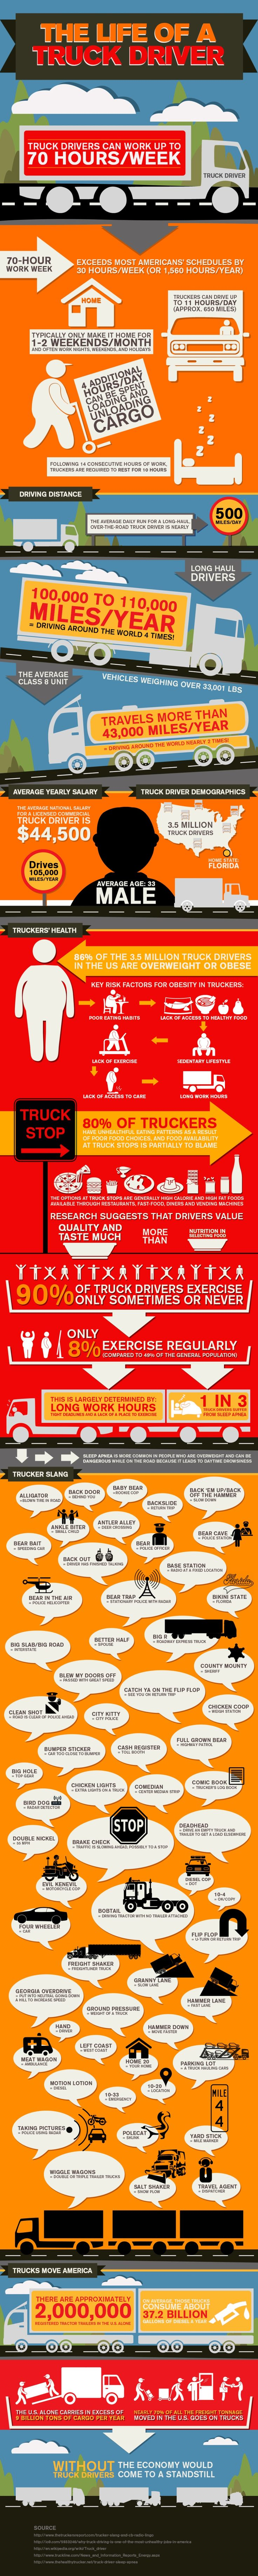 The Life of a Truck Driver Infographic #Trucking #Truckers #SemiTrucks: